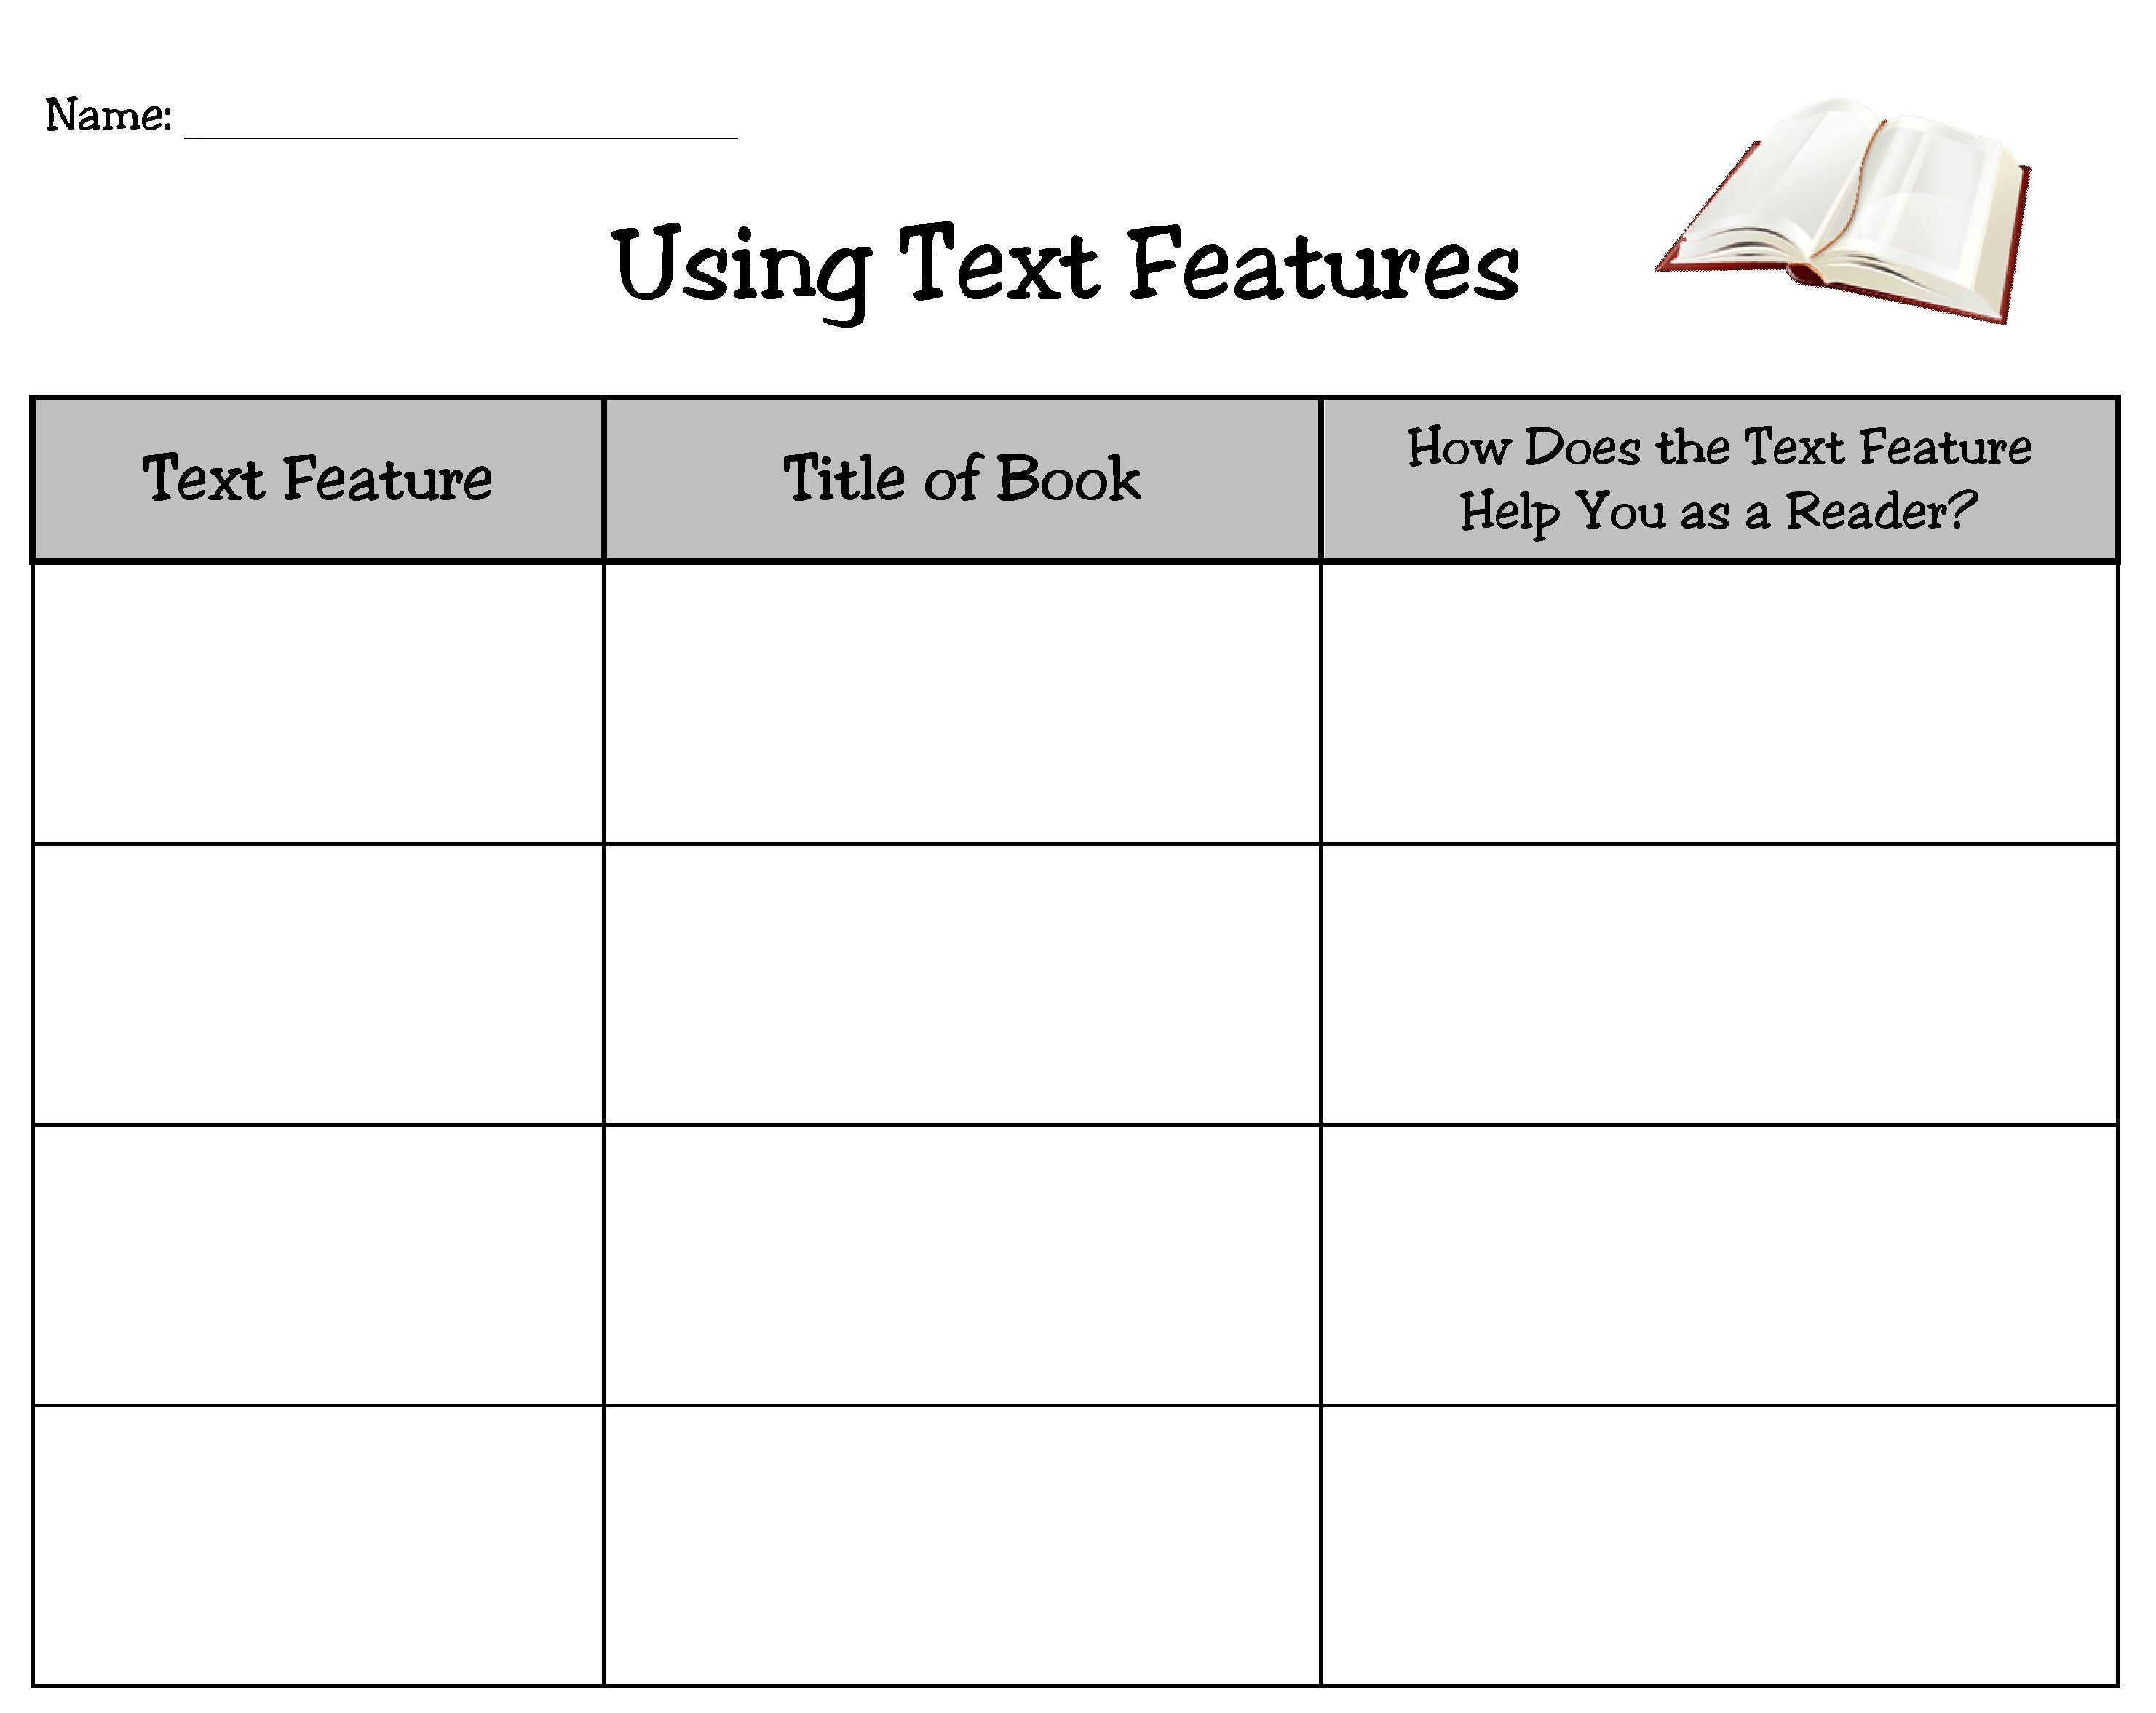 Worksheets Text Features Worksheets text and graphic features worksheets switchconf 6a00e54faaf86b8833014e5fa3de20970c 2 353 pixels the 25 best worksheet